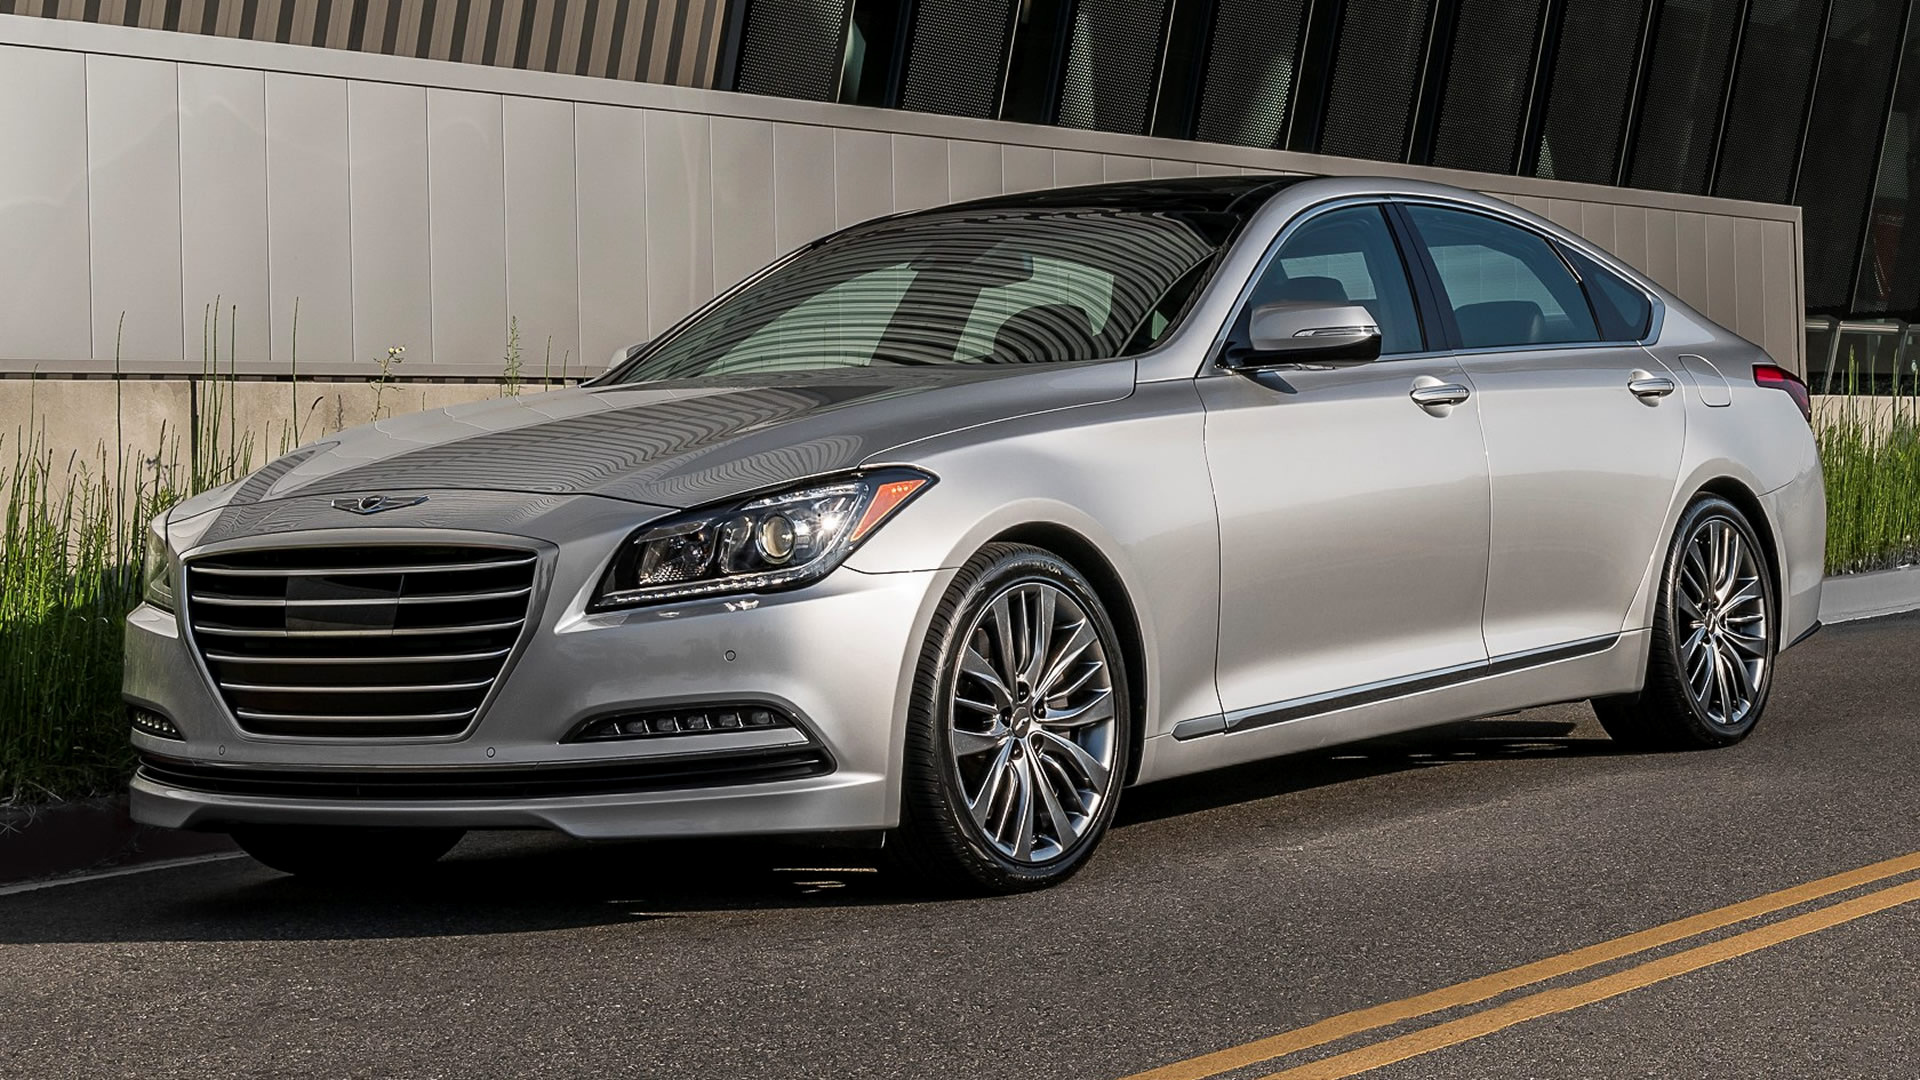 Genesis G80 (2017) Wallpapers and HD Images - Car Pixel